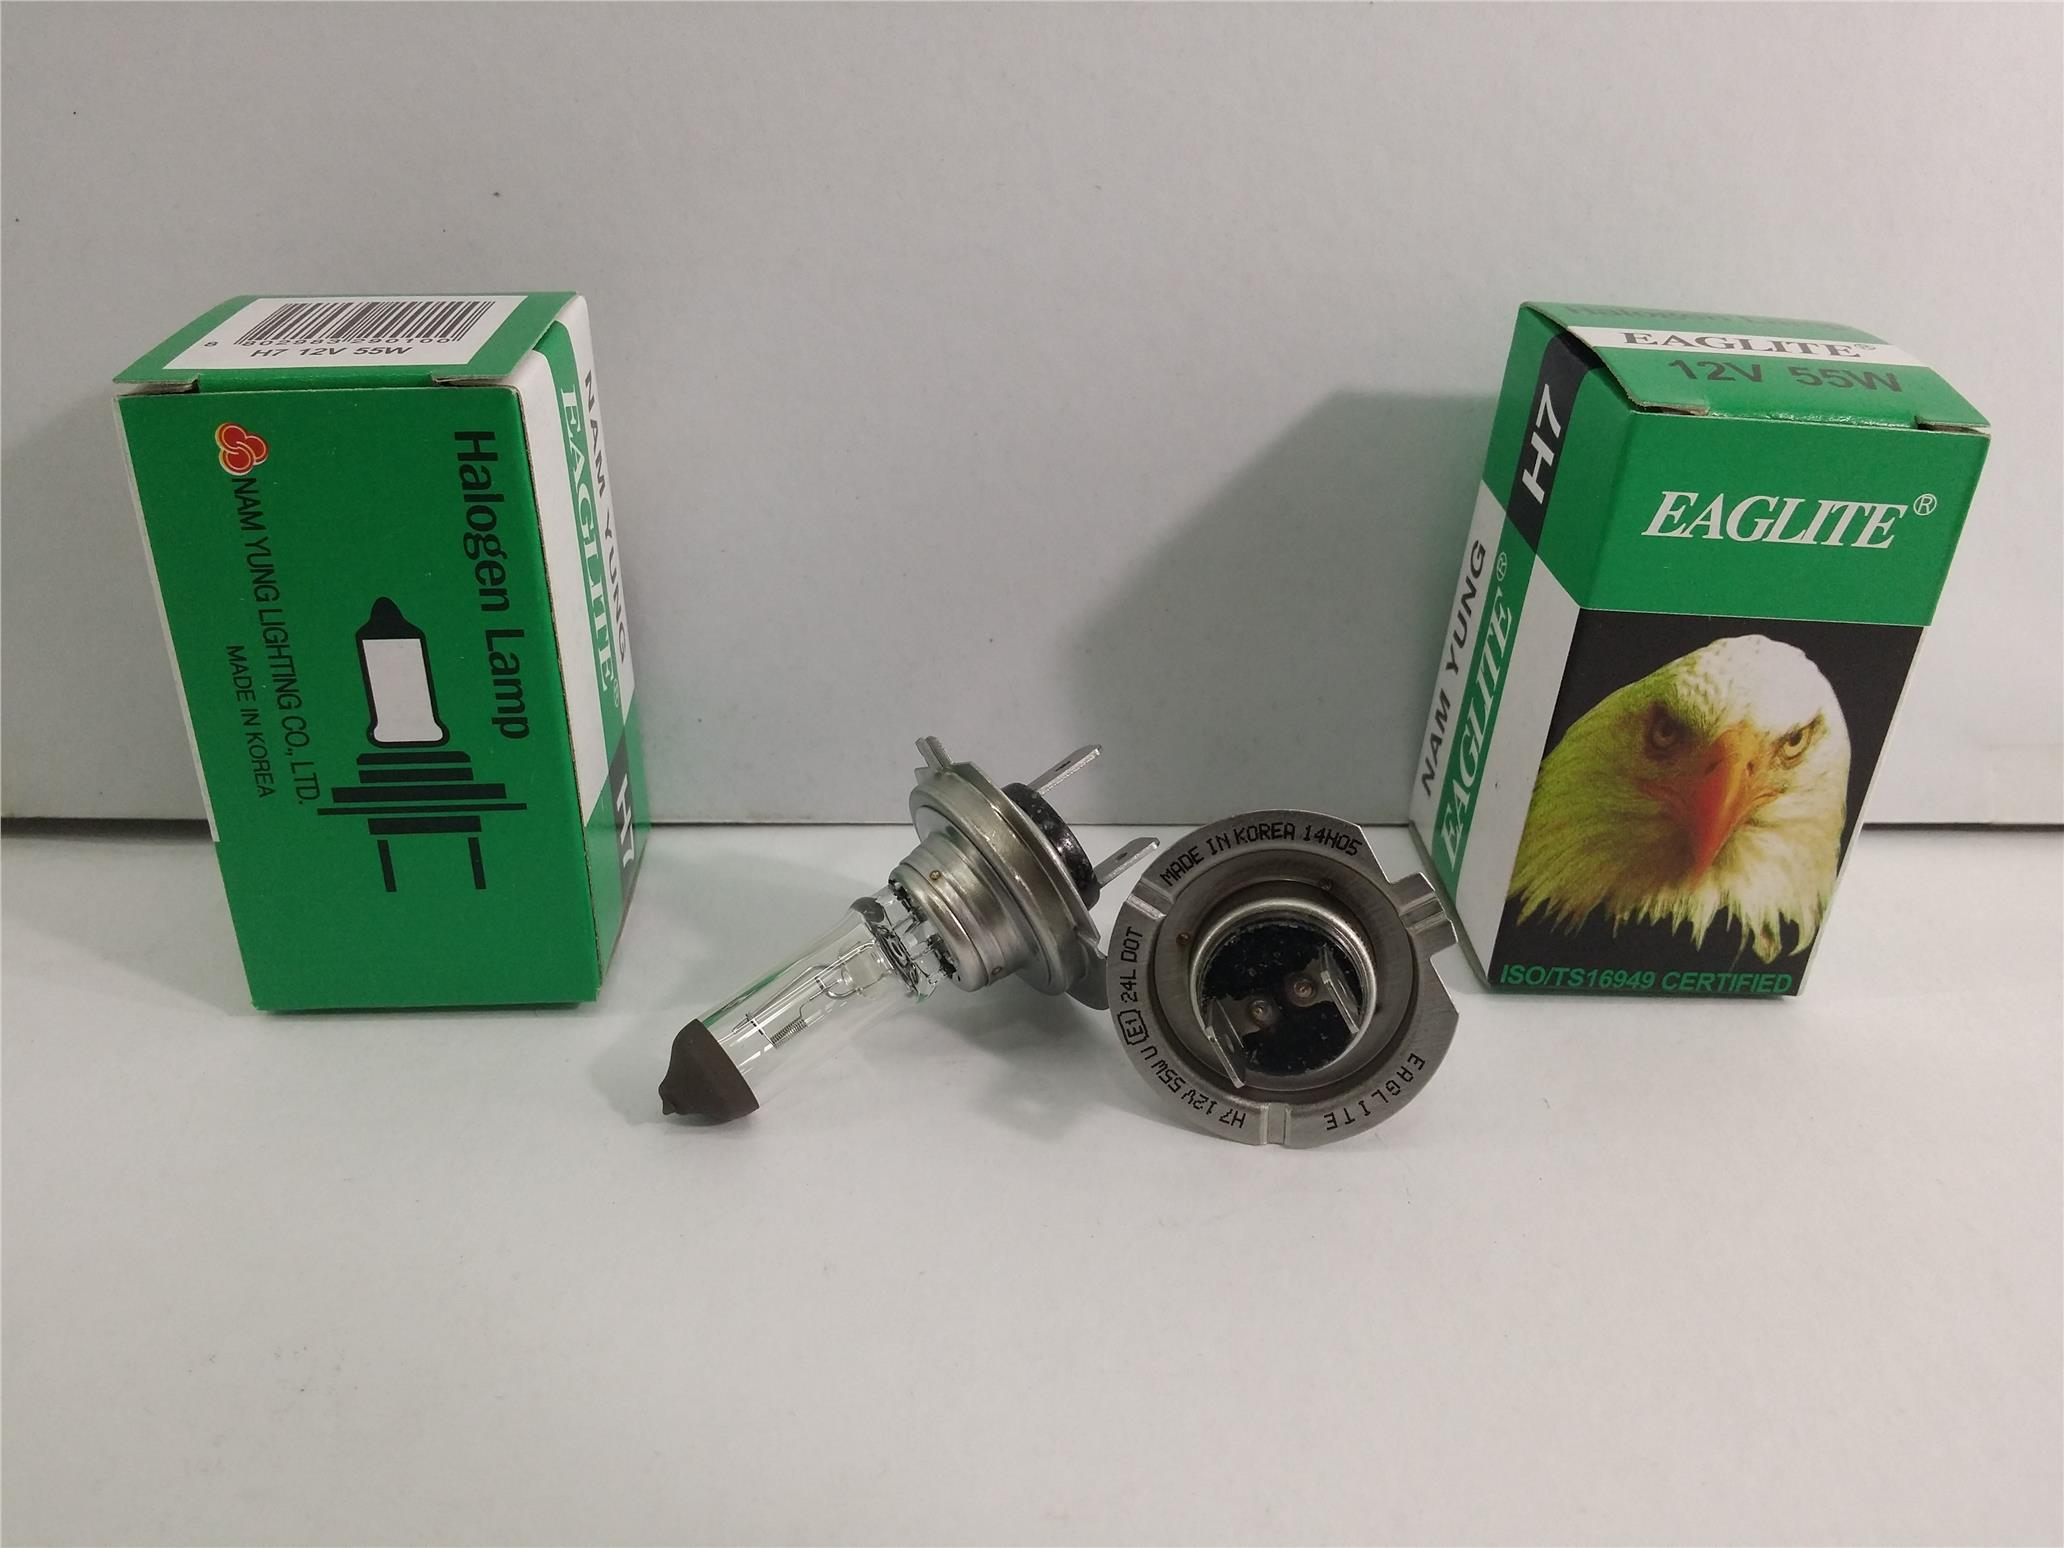 EAGLEYE H7 BULB SET 2 PIECES 12V 55W MADE IN KOREA NAM YUNG